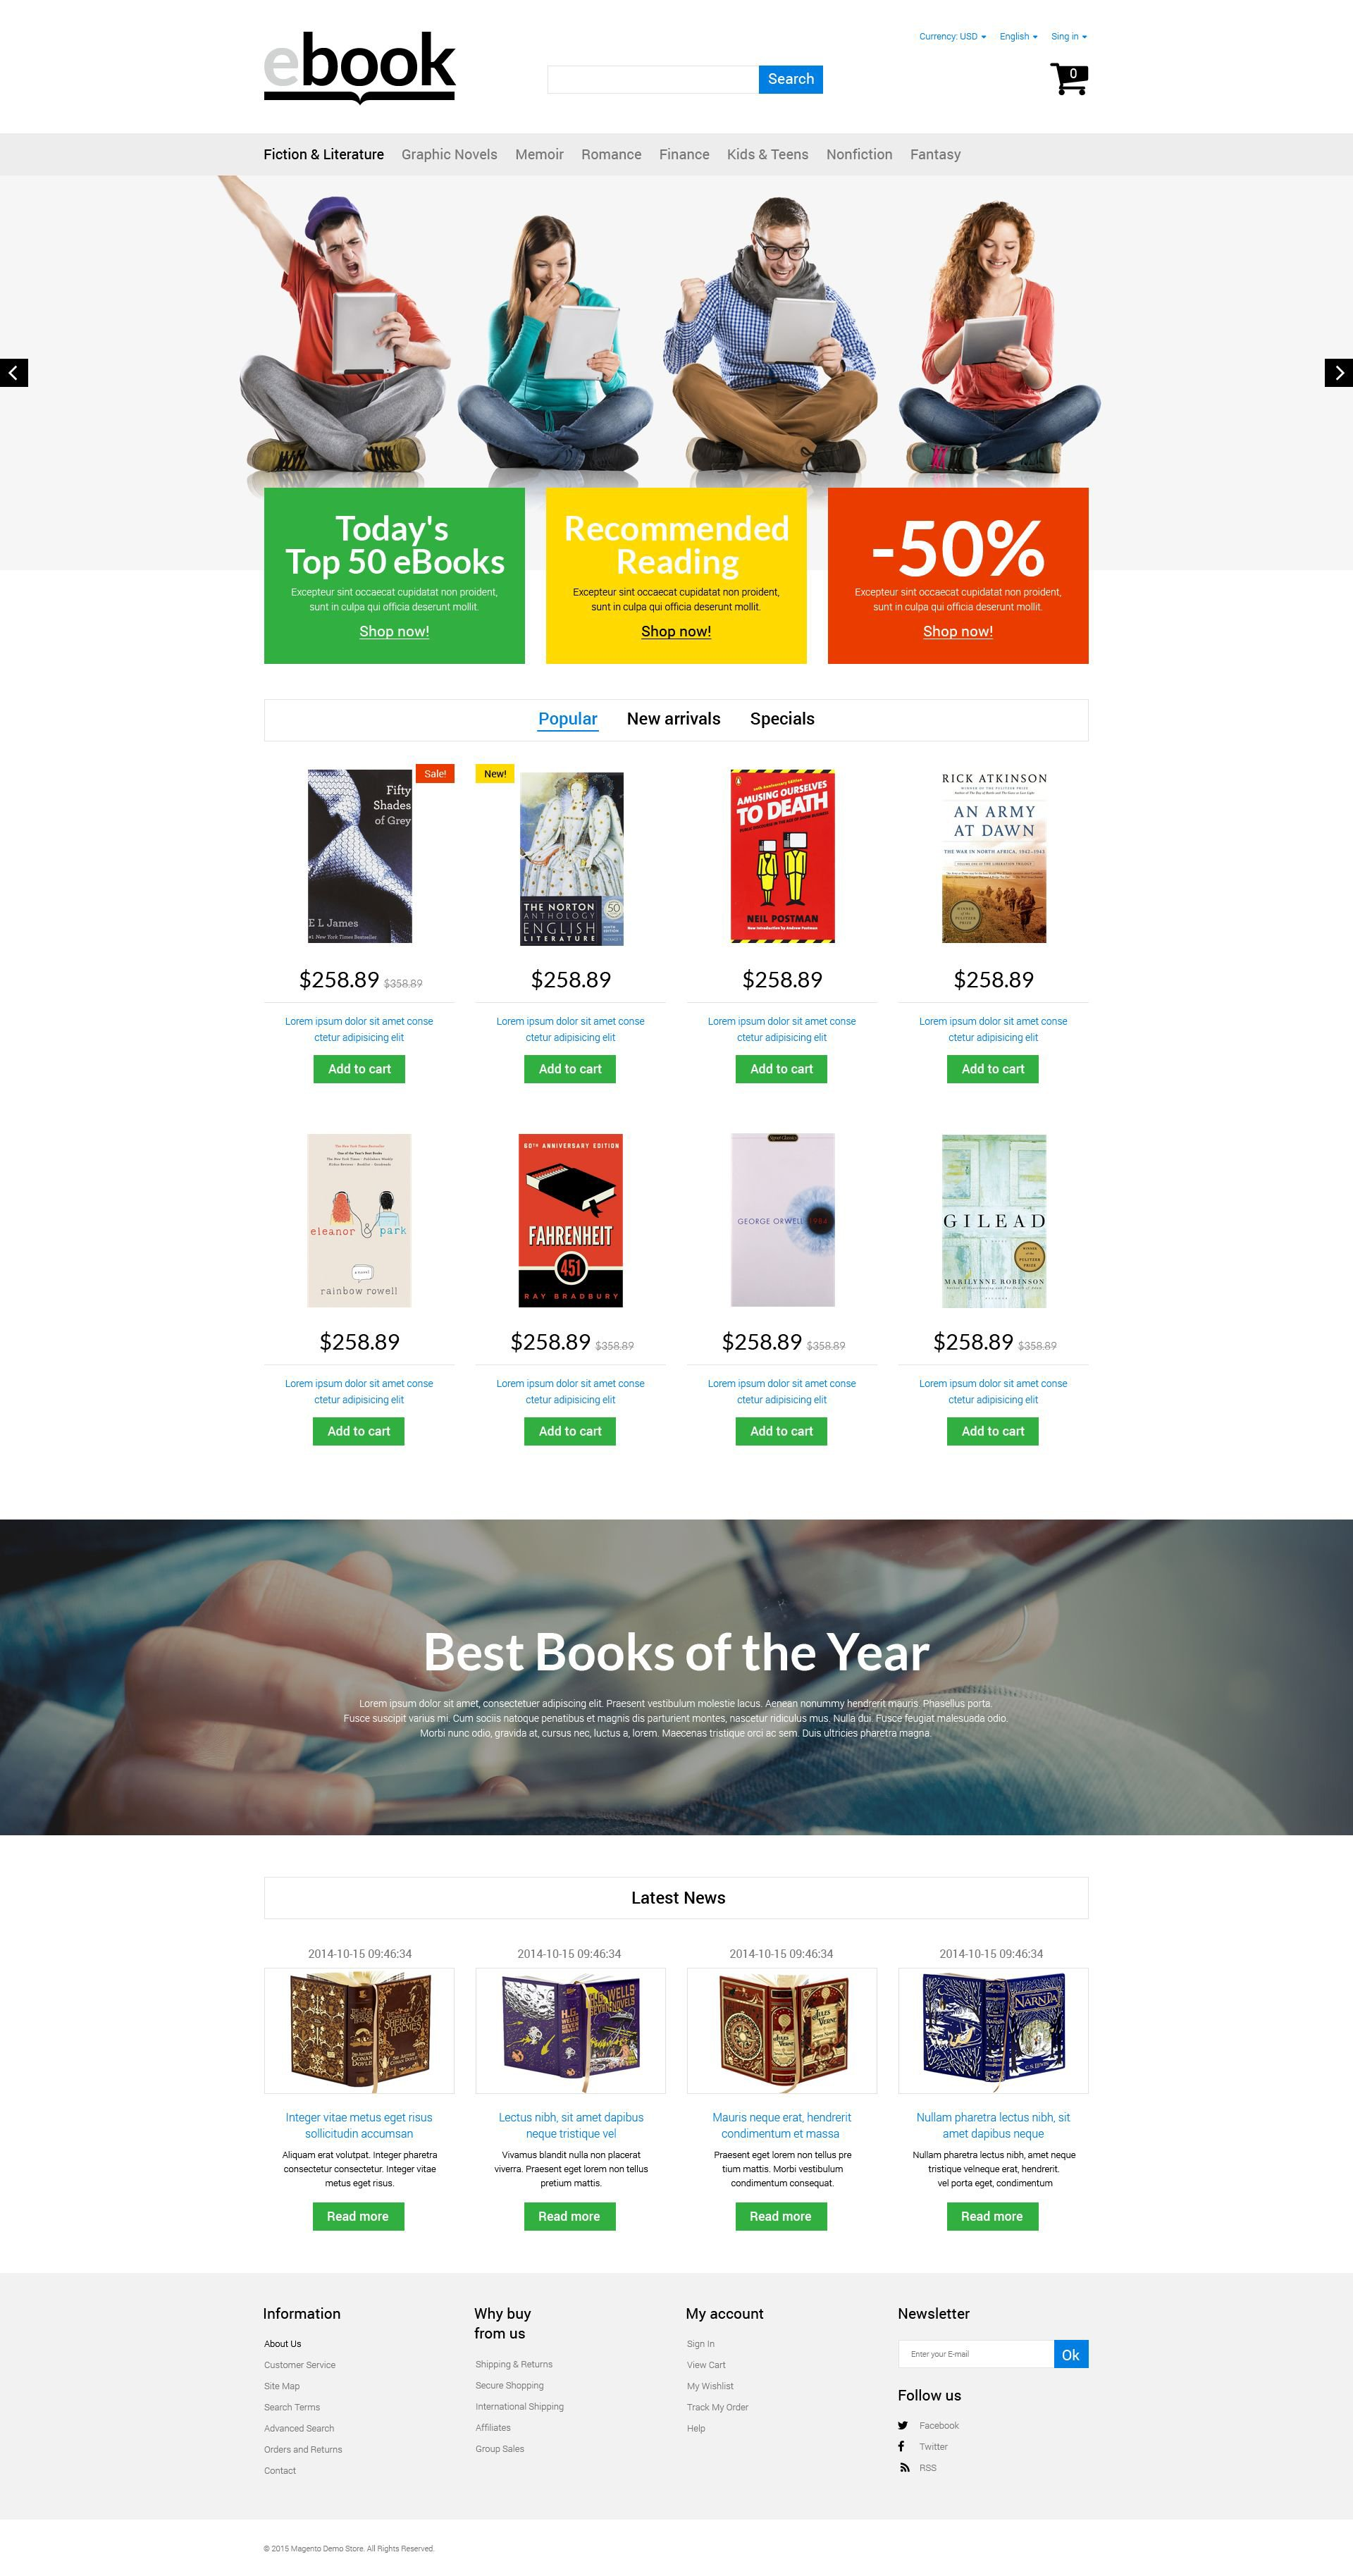 The Ebooks Store PrestaShop Design 53956, one of the best PrestaShop themes of its kind (books, most popular), also known as ebooks store PrestaShop template, books PrestaShop template, bookers PrestaShop template, publishing PrestaShop template, book PrestaShop template, books PrestaShop template, publish PrestaShop template, publisher PrestaShop template, author PrestaShop template, press PrestaShop template, story PrestaShop template, novel PrestaShop template, fiction PrestaShop template, detective PrestaShop template, science and related with ebooks store, books, bookers, publishing, book, books, publish, publisher, author, press, story, novel, fiction, detective, science, etc.